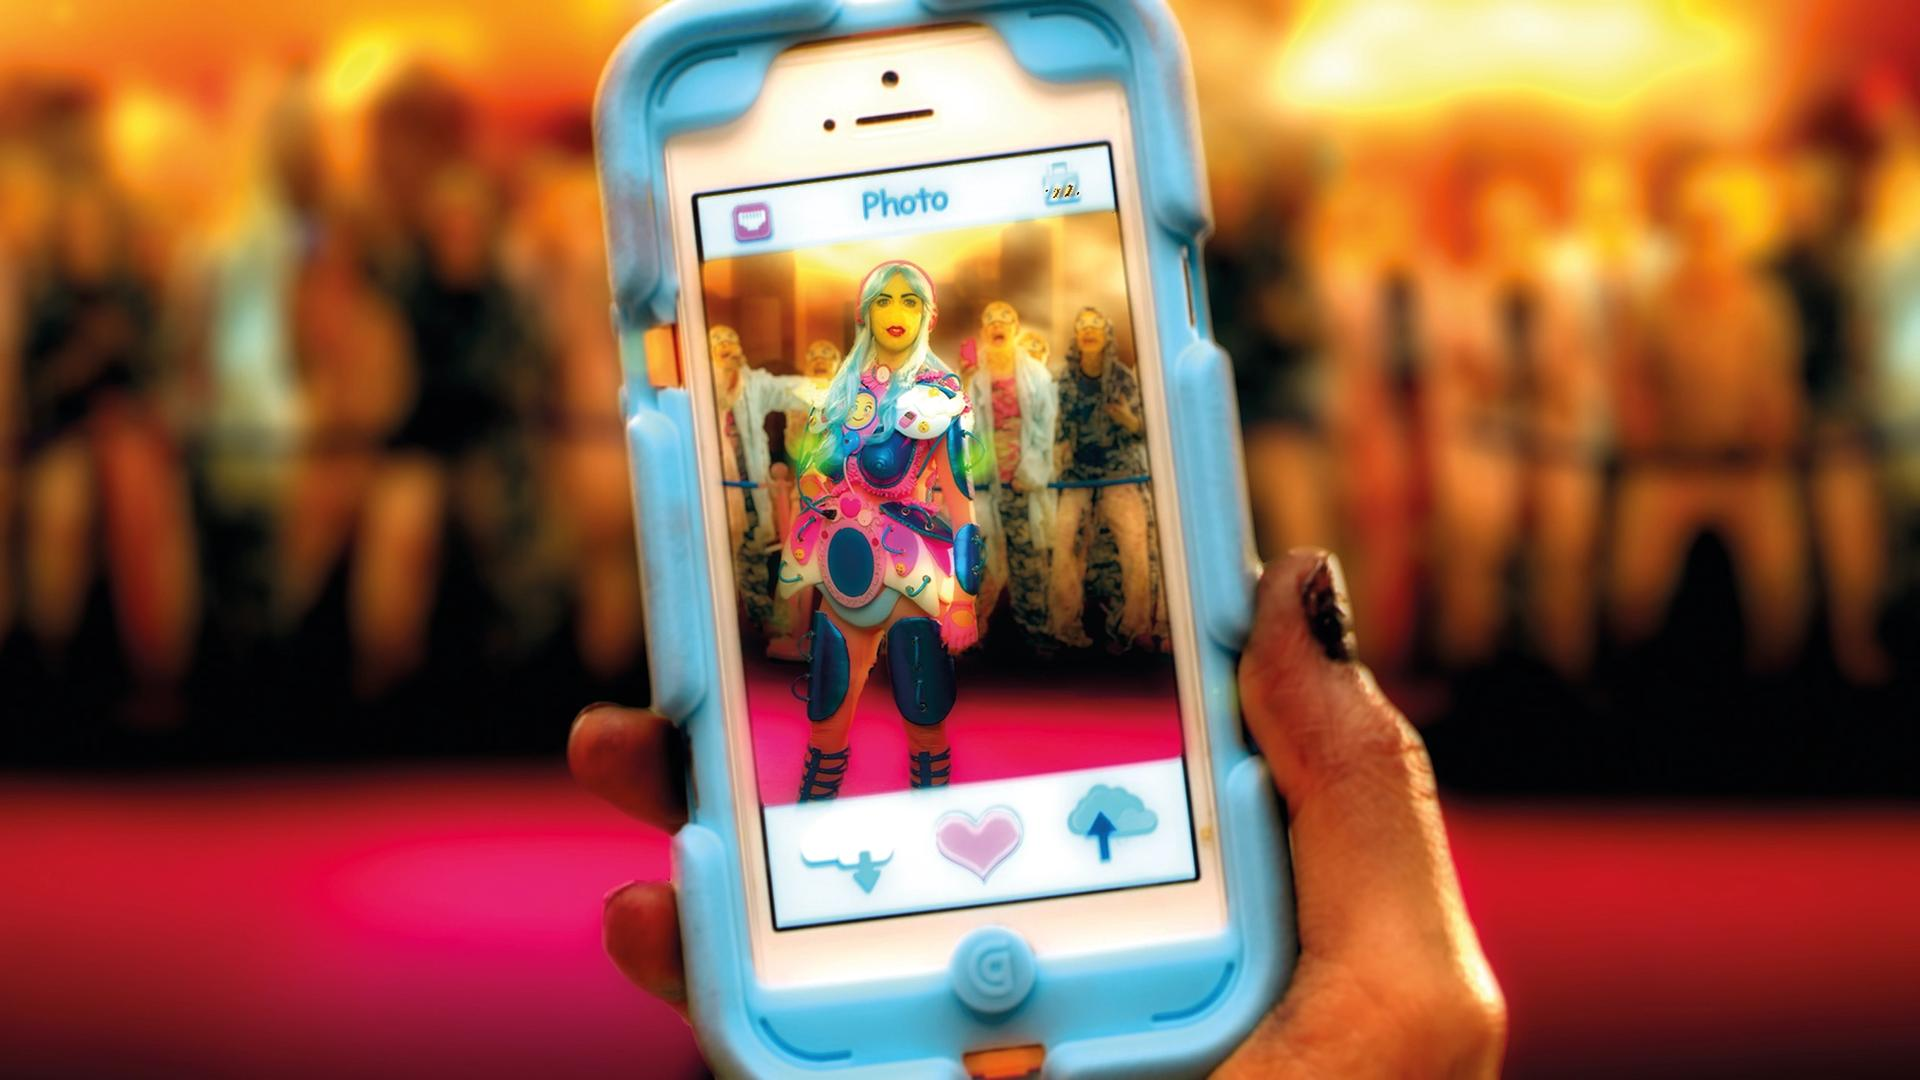 Rachel Maclean: It's What's Inside That Counts (2016) Rachel Maclean; Commissioned by HOME in partnership with University of Salford Art Collection, Artpace, Zabludowicz Collection, Tate, Frieze Film and Channel 4 Random Acts